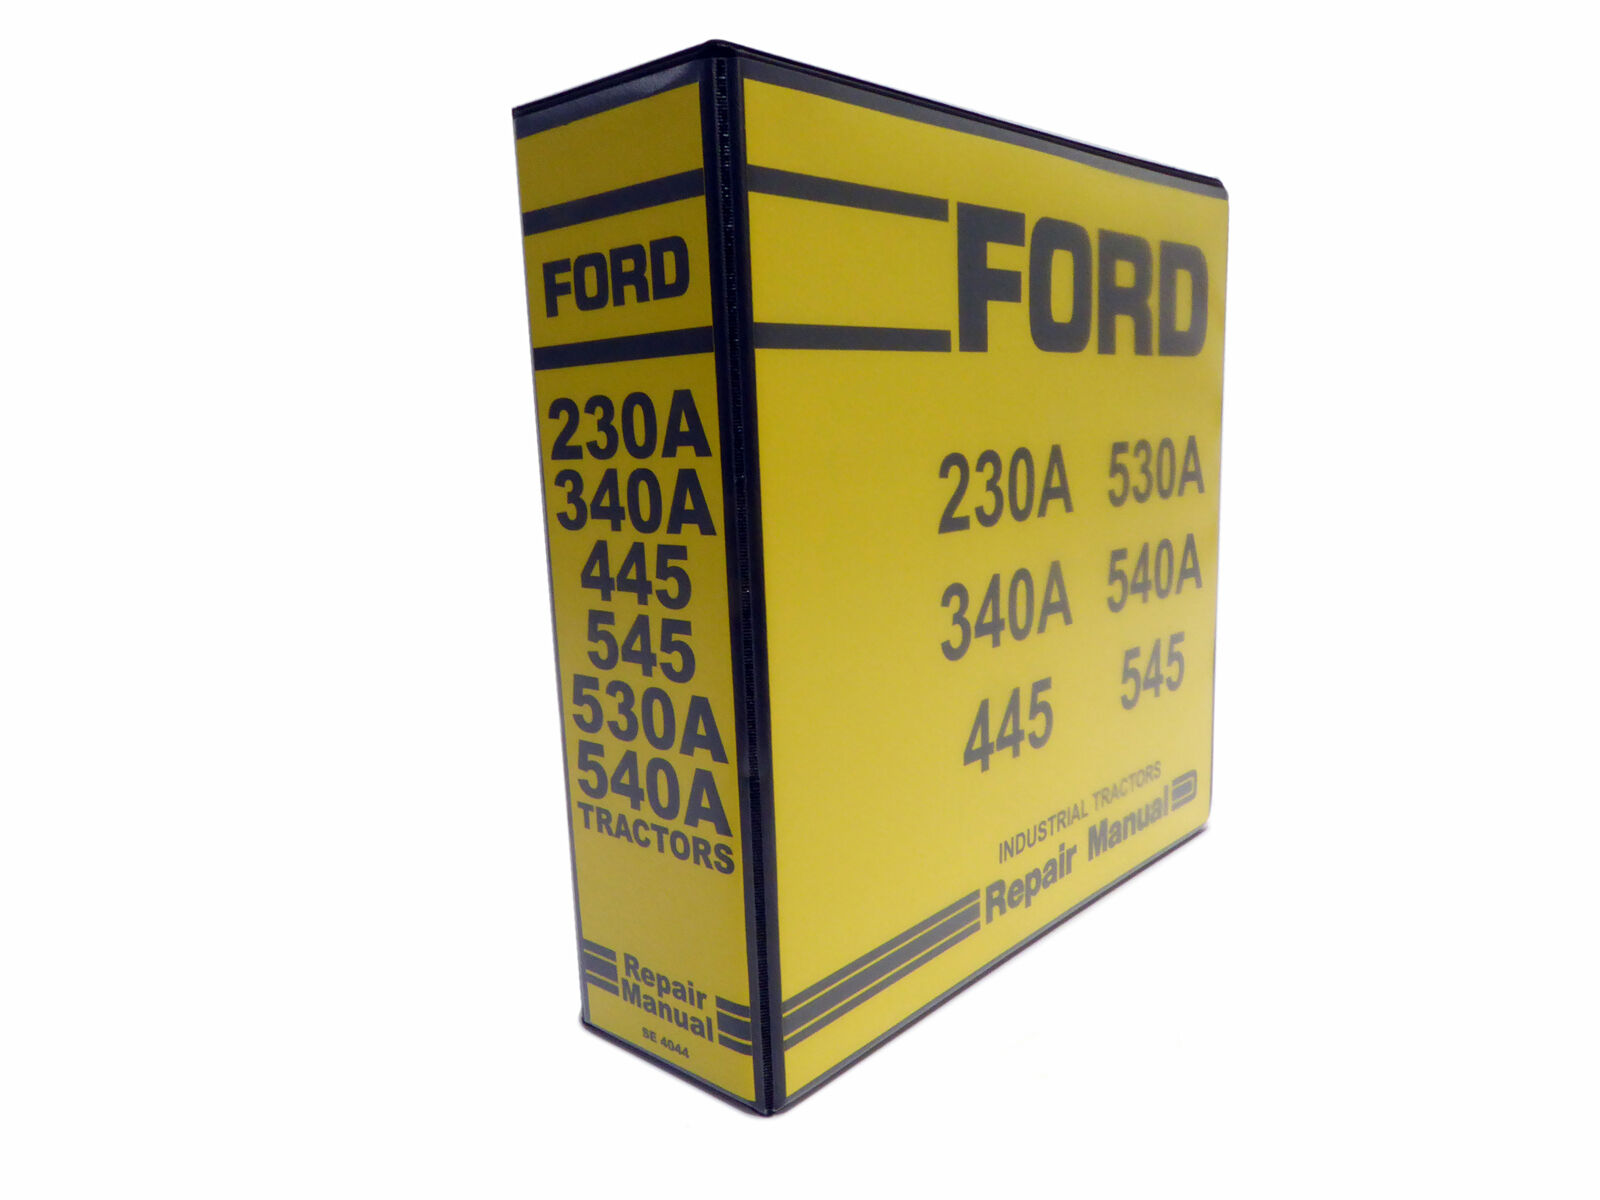 Ford 230A,340A,445,530A,540A,545 Tractor Service Manual Repair Shop 1 of  12Only 2 available Ford ...